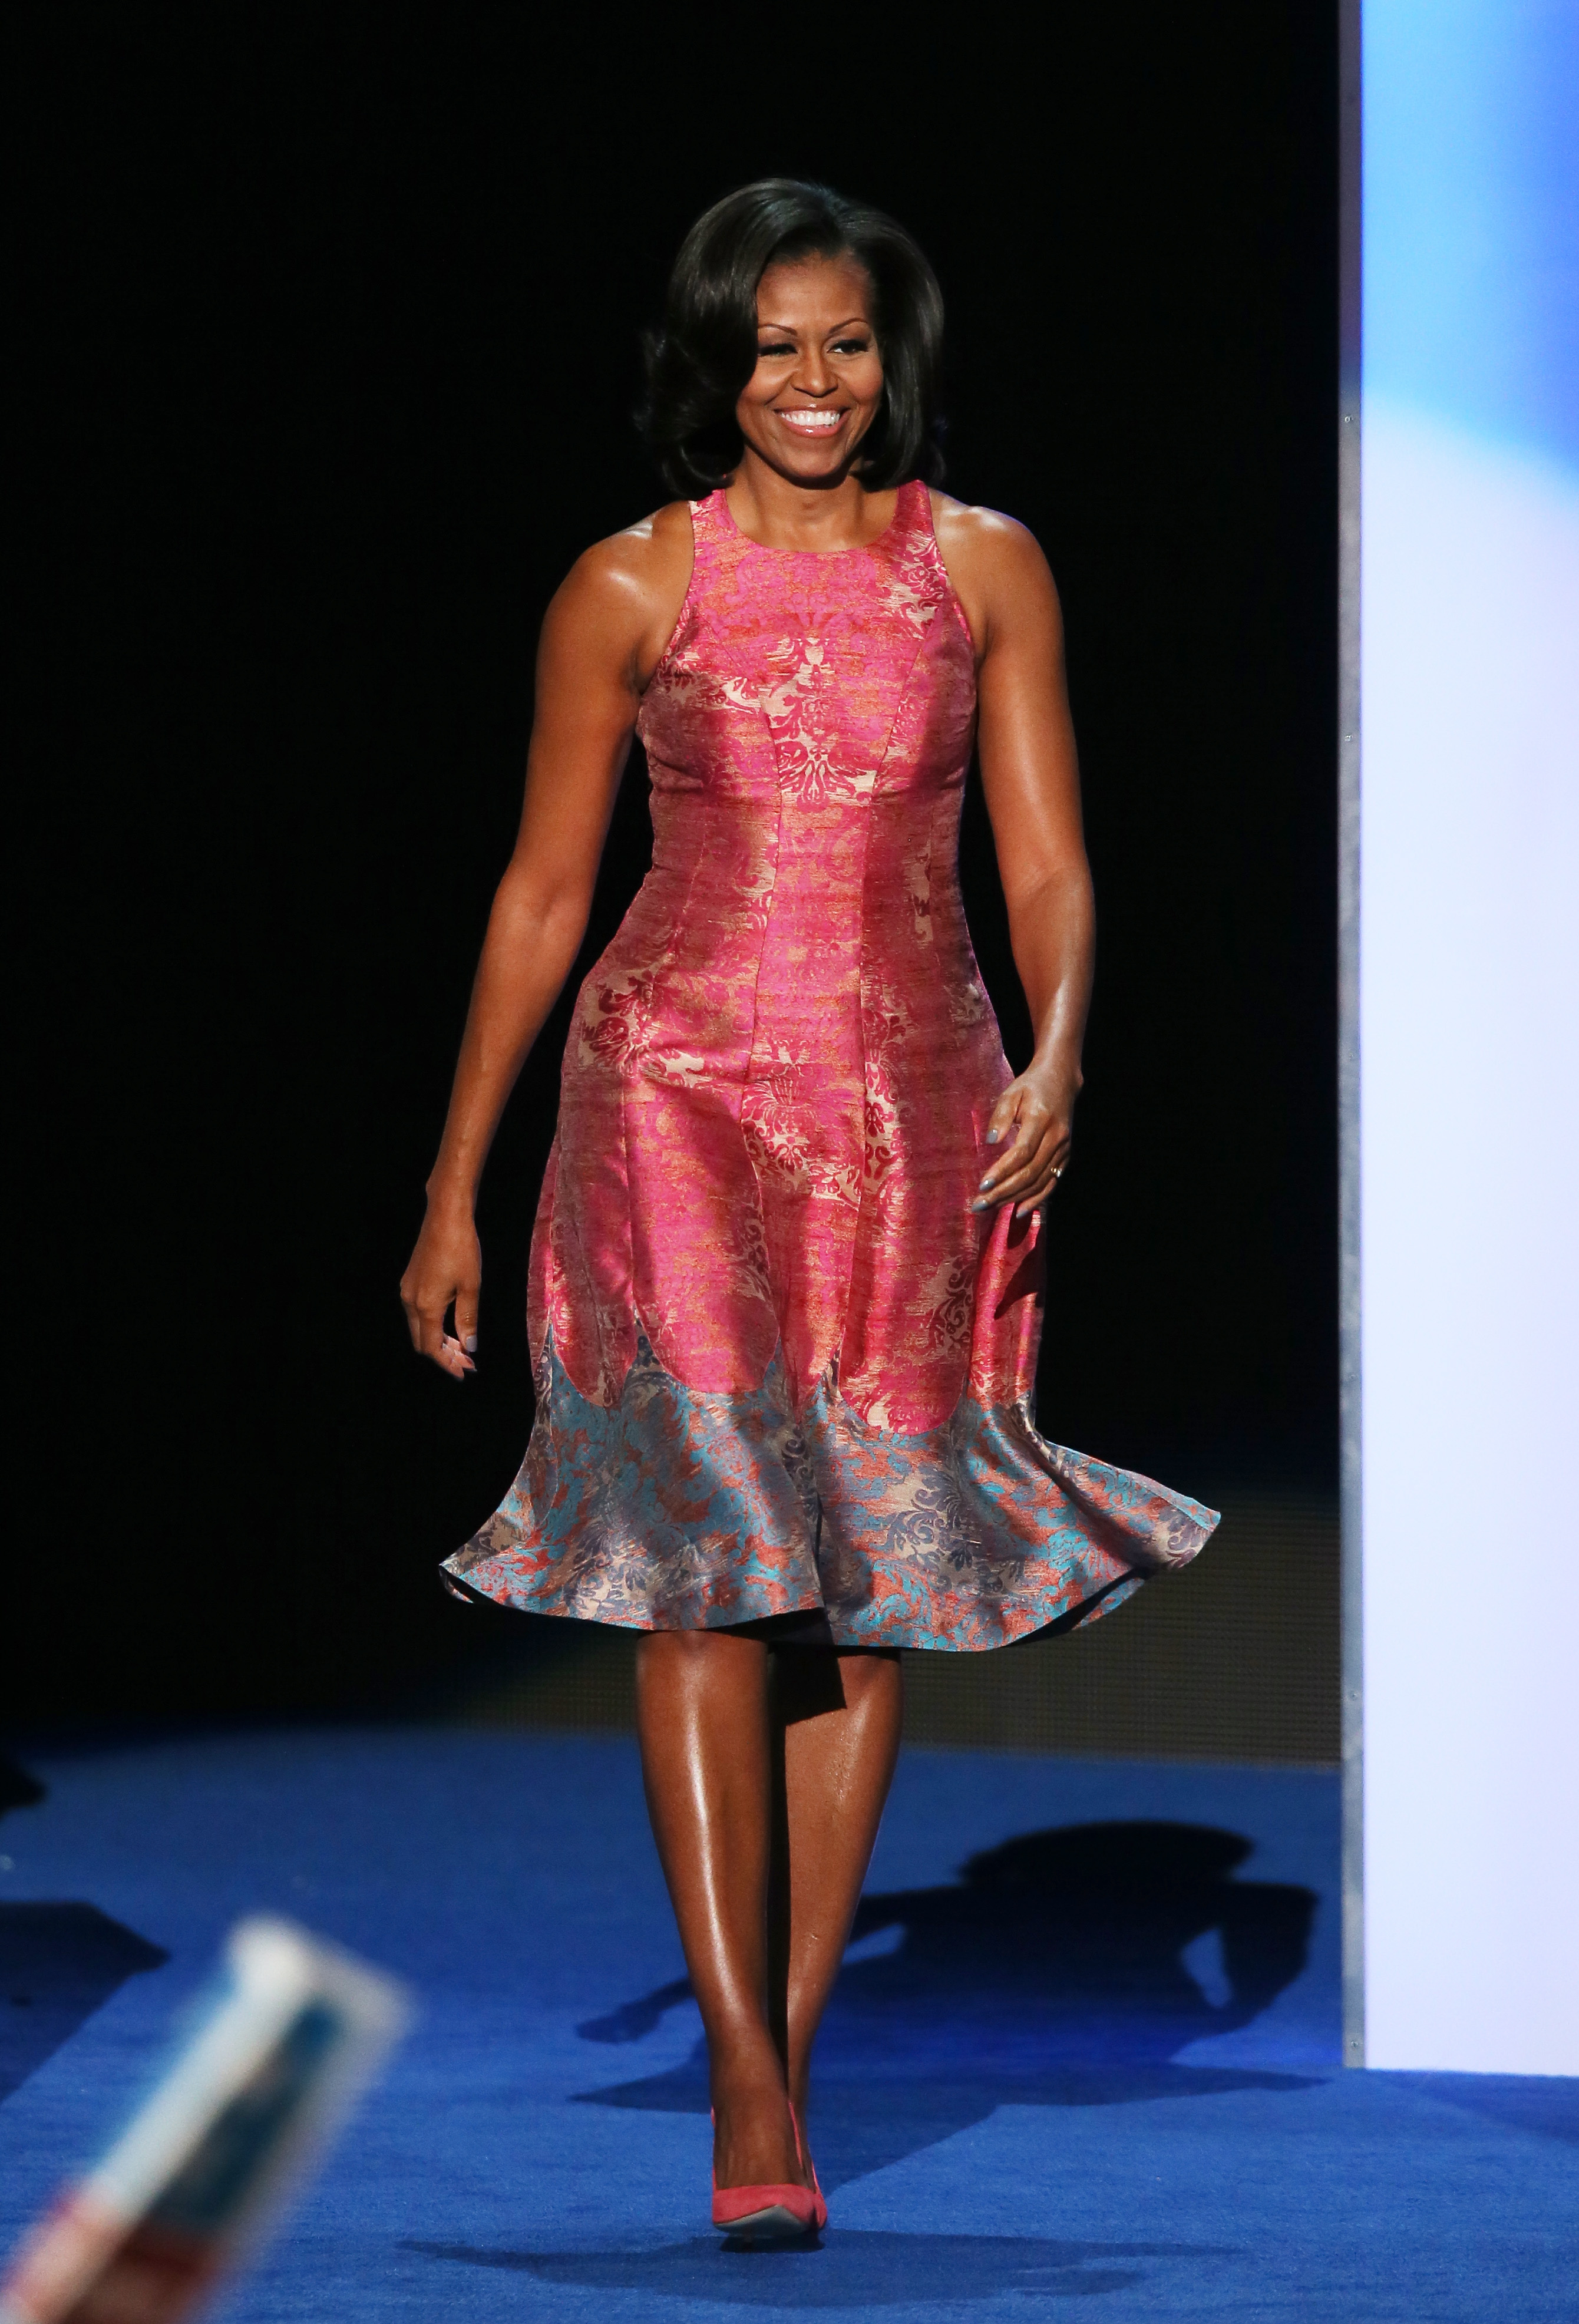 First lady Michelle Obama takes the stage during day one of the Democratic National Convention at Time Warner Cable Arena on September 4, 2012 in Charlotte, North Carolina. (Photo by Alex Wong/Getty Images)